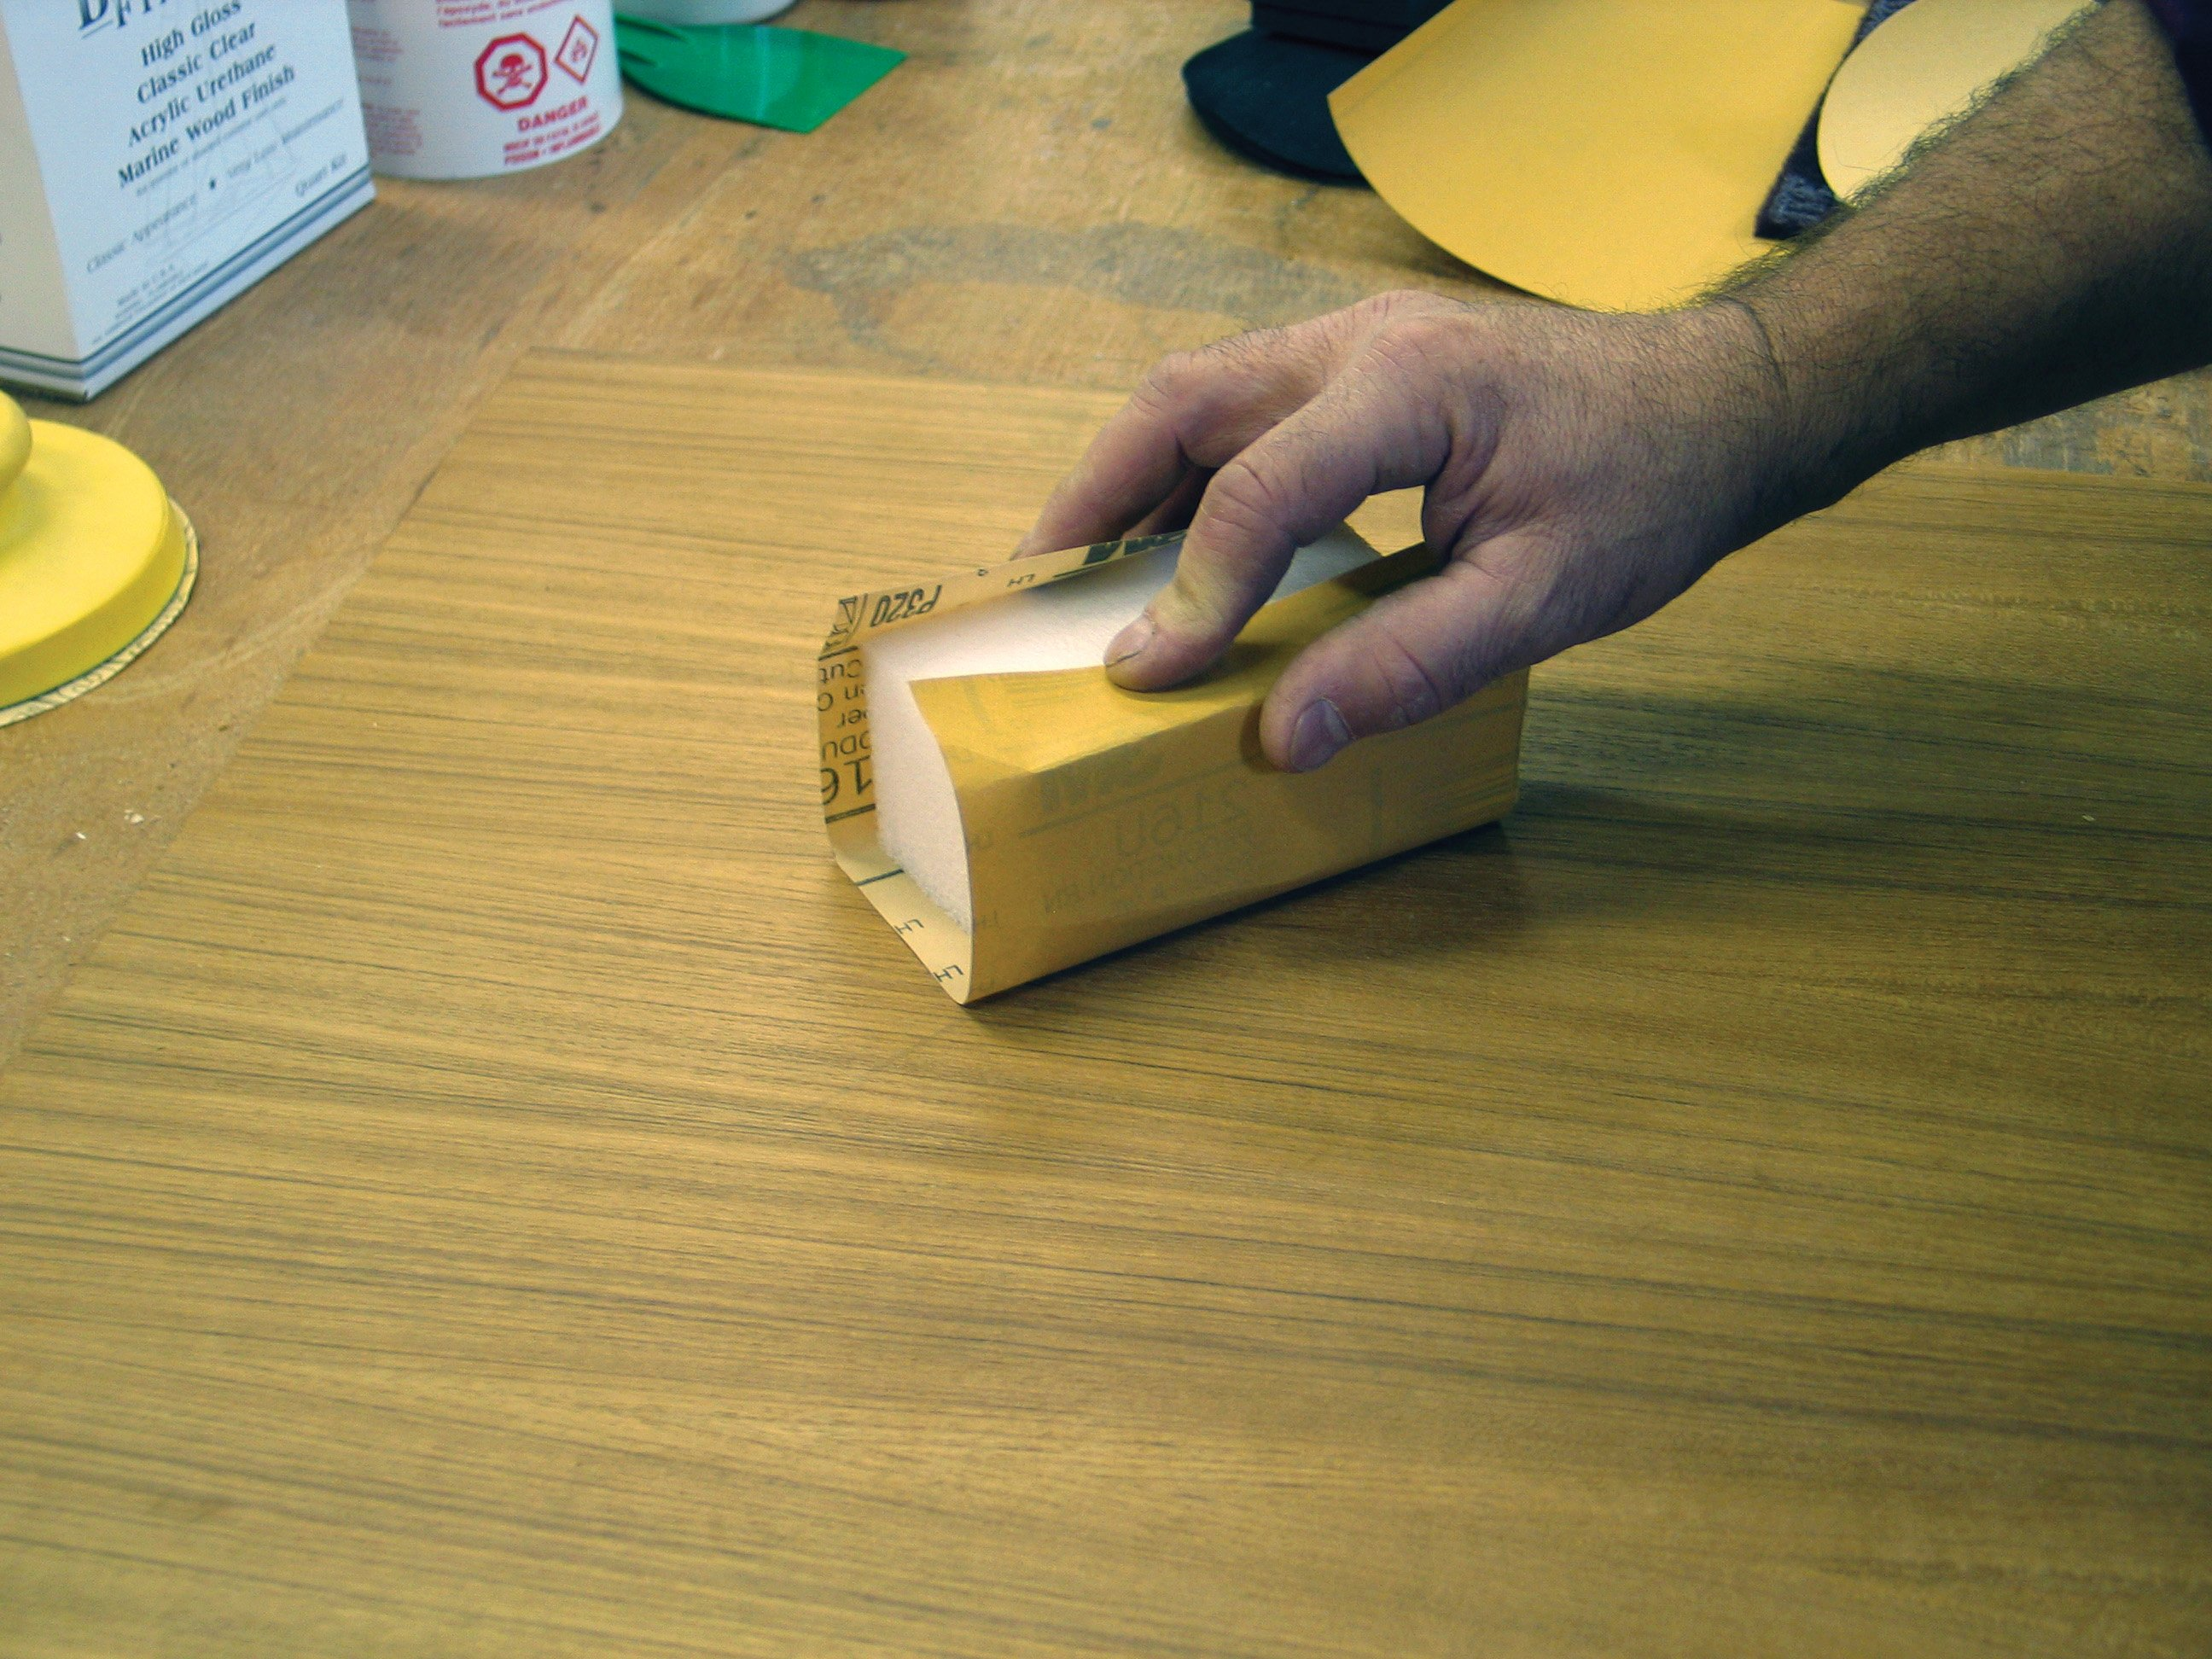 Photo of sanding the wood surface